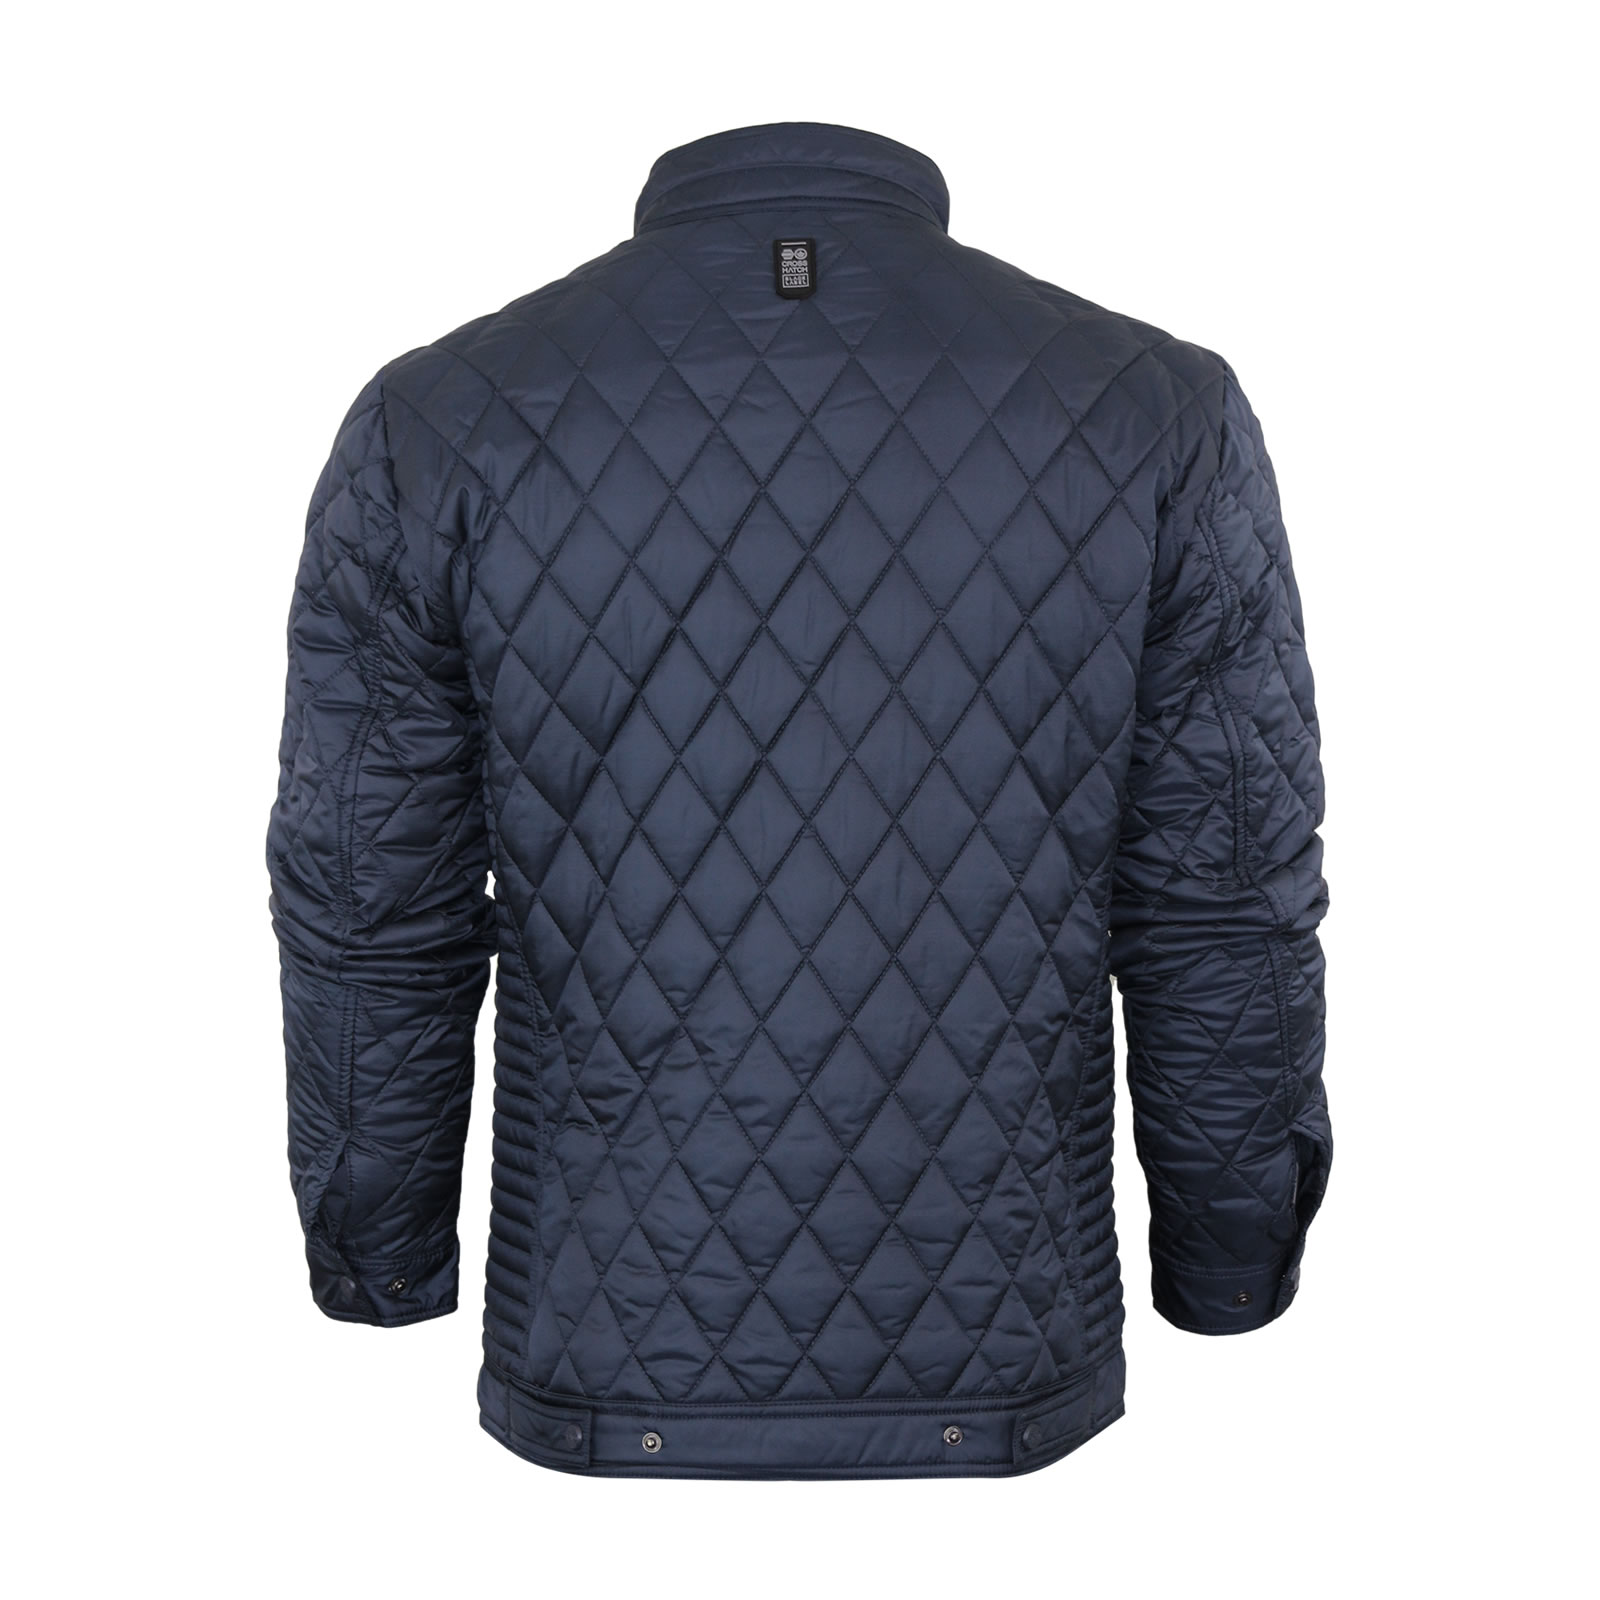 Mens quilted jacket crosshatch quilts diamond hunter for Quilted jackets for men